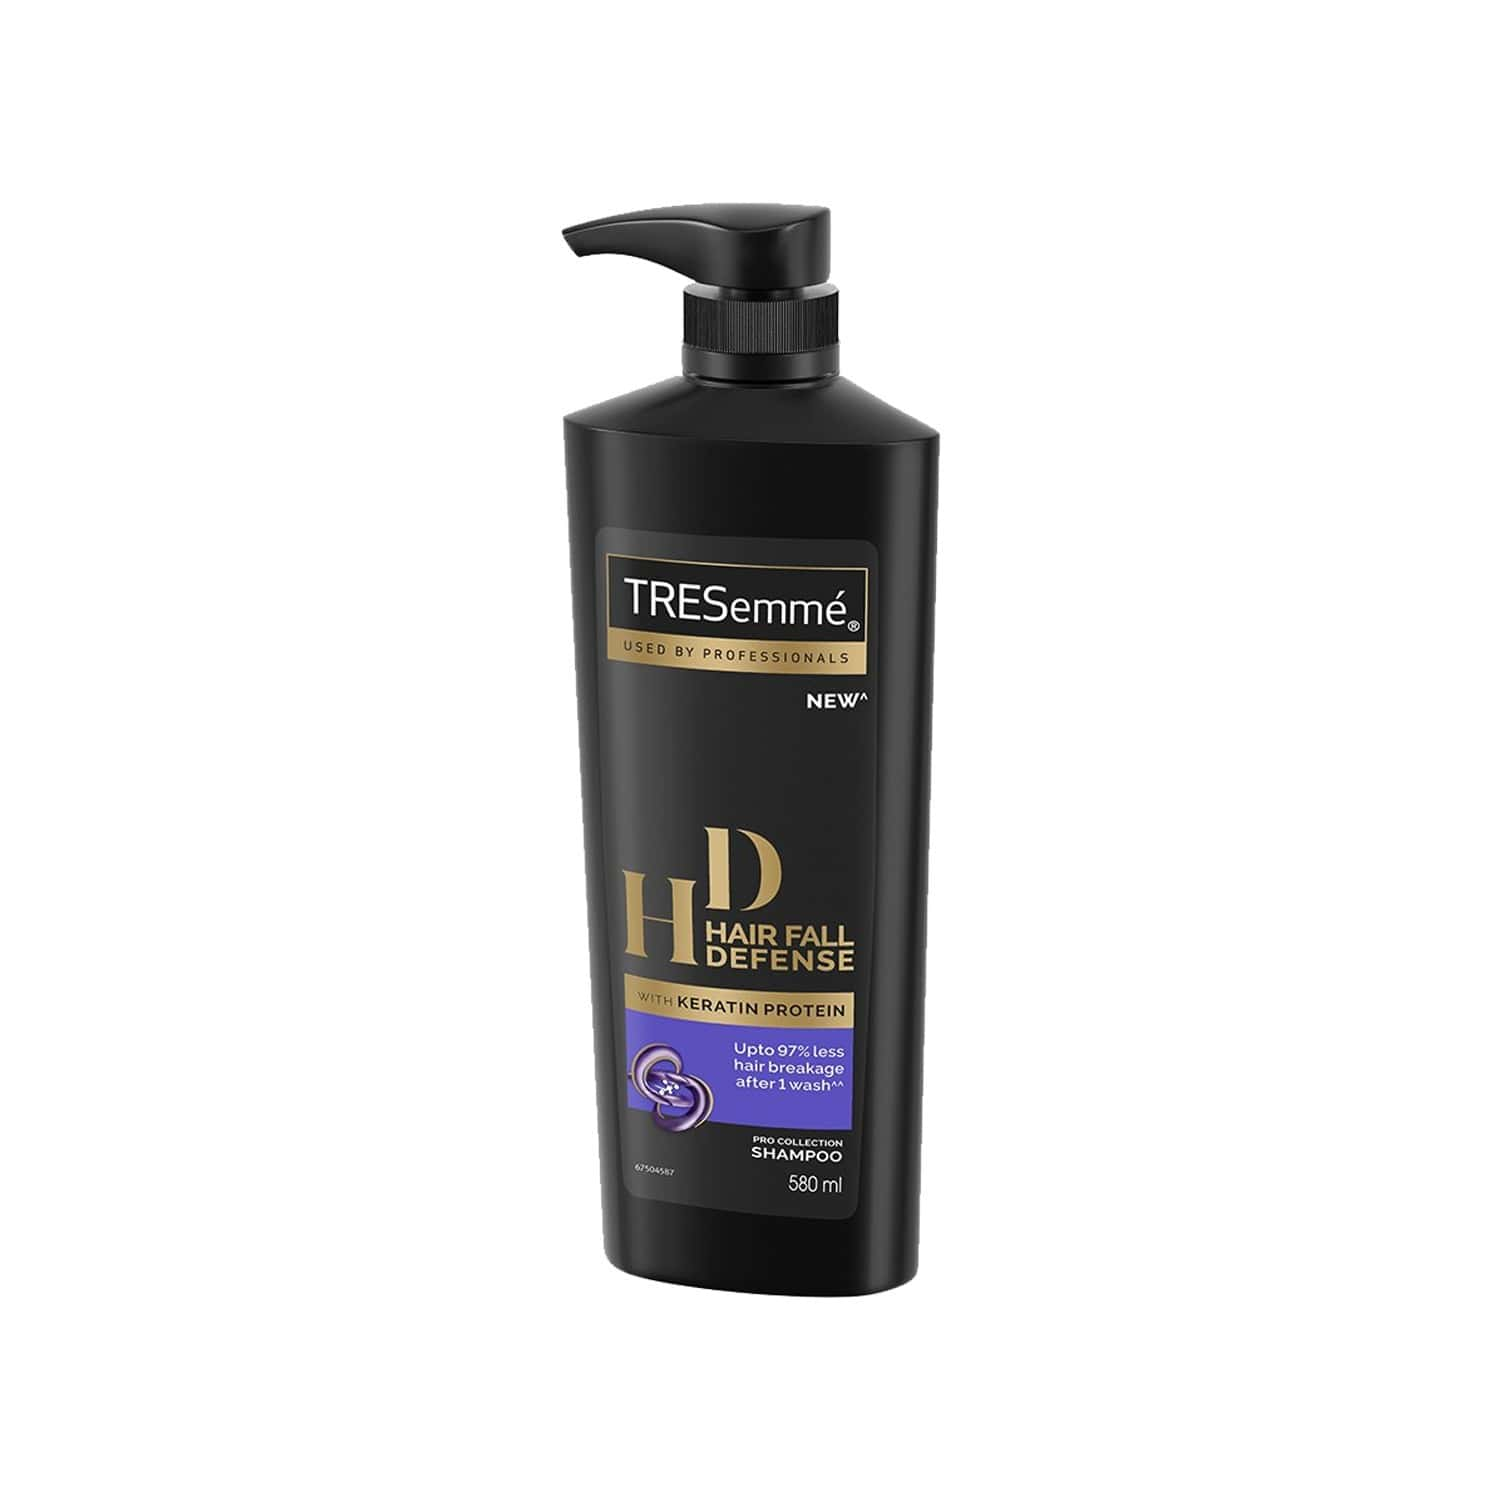 Tresemme Hair Fall Defense Shampoo-580 Ml